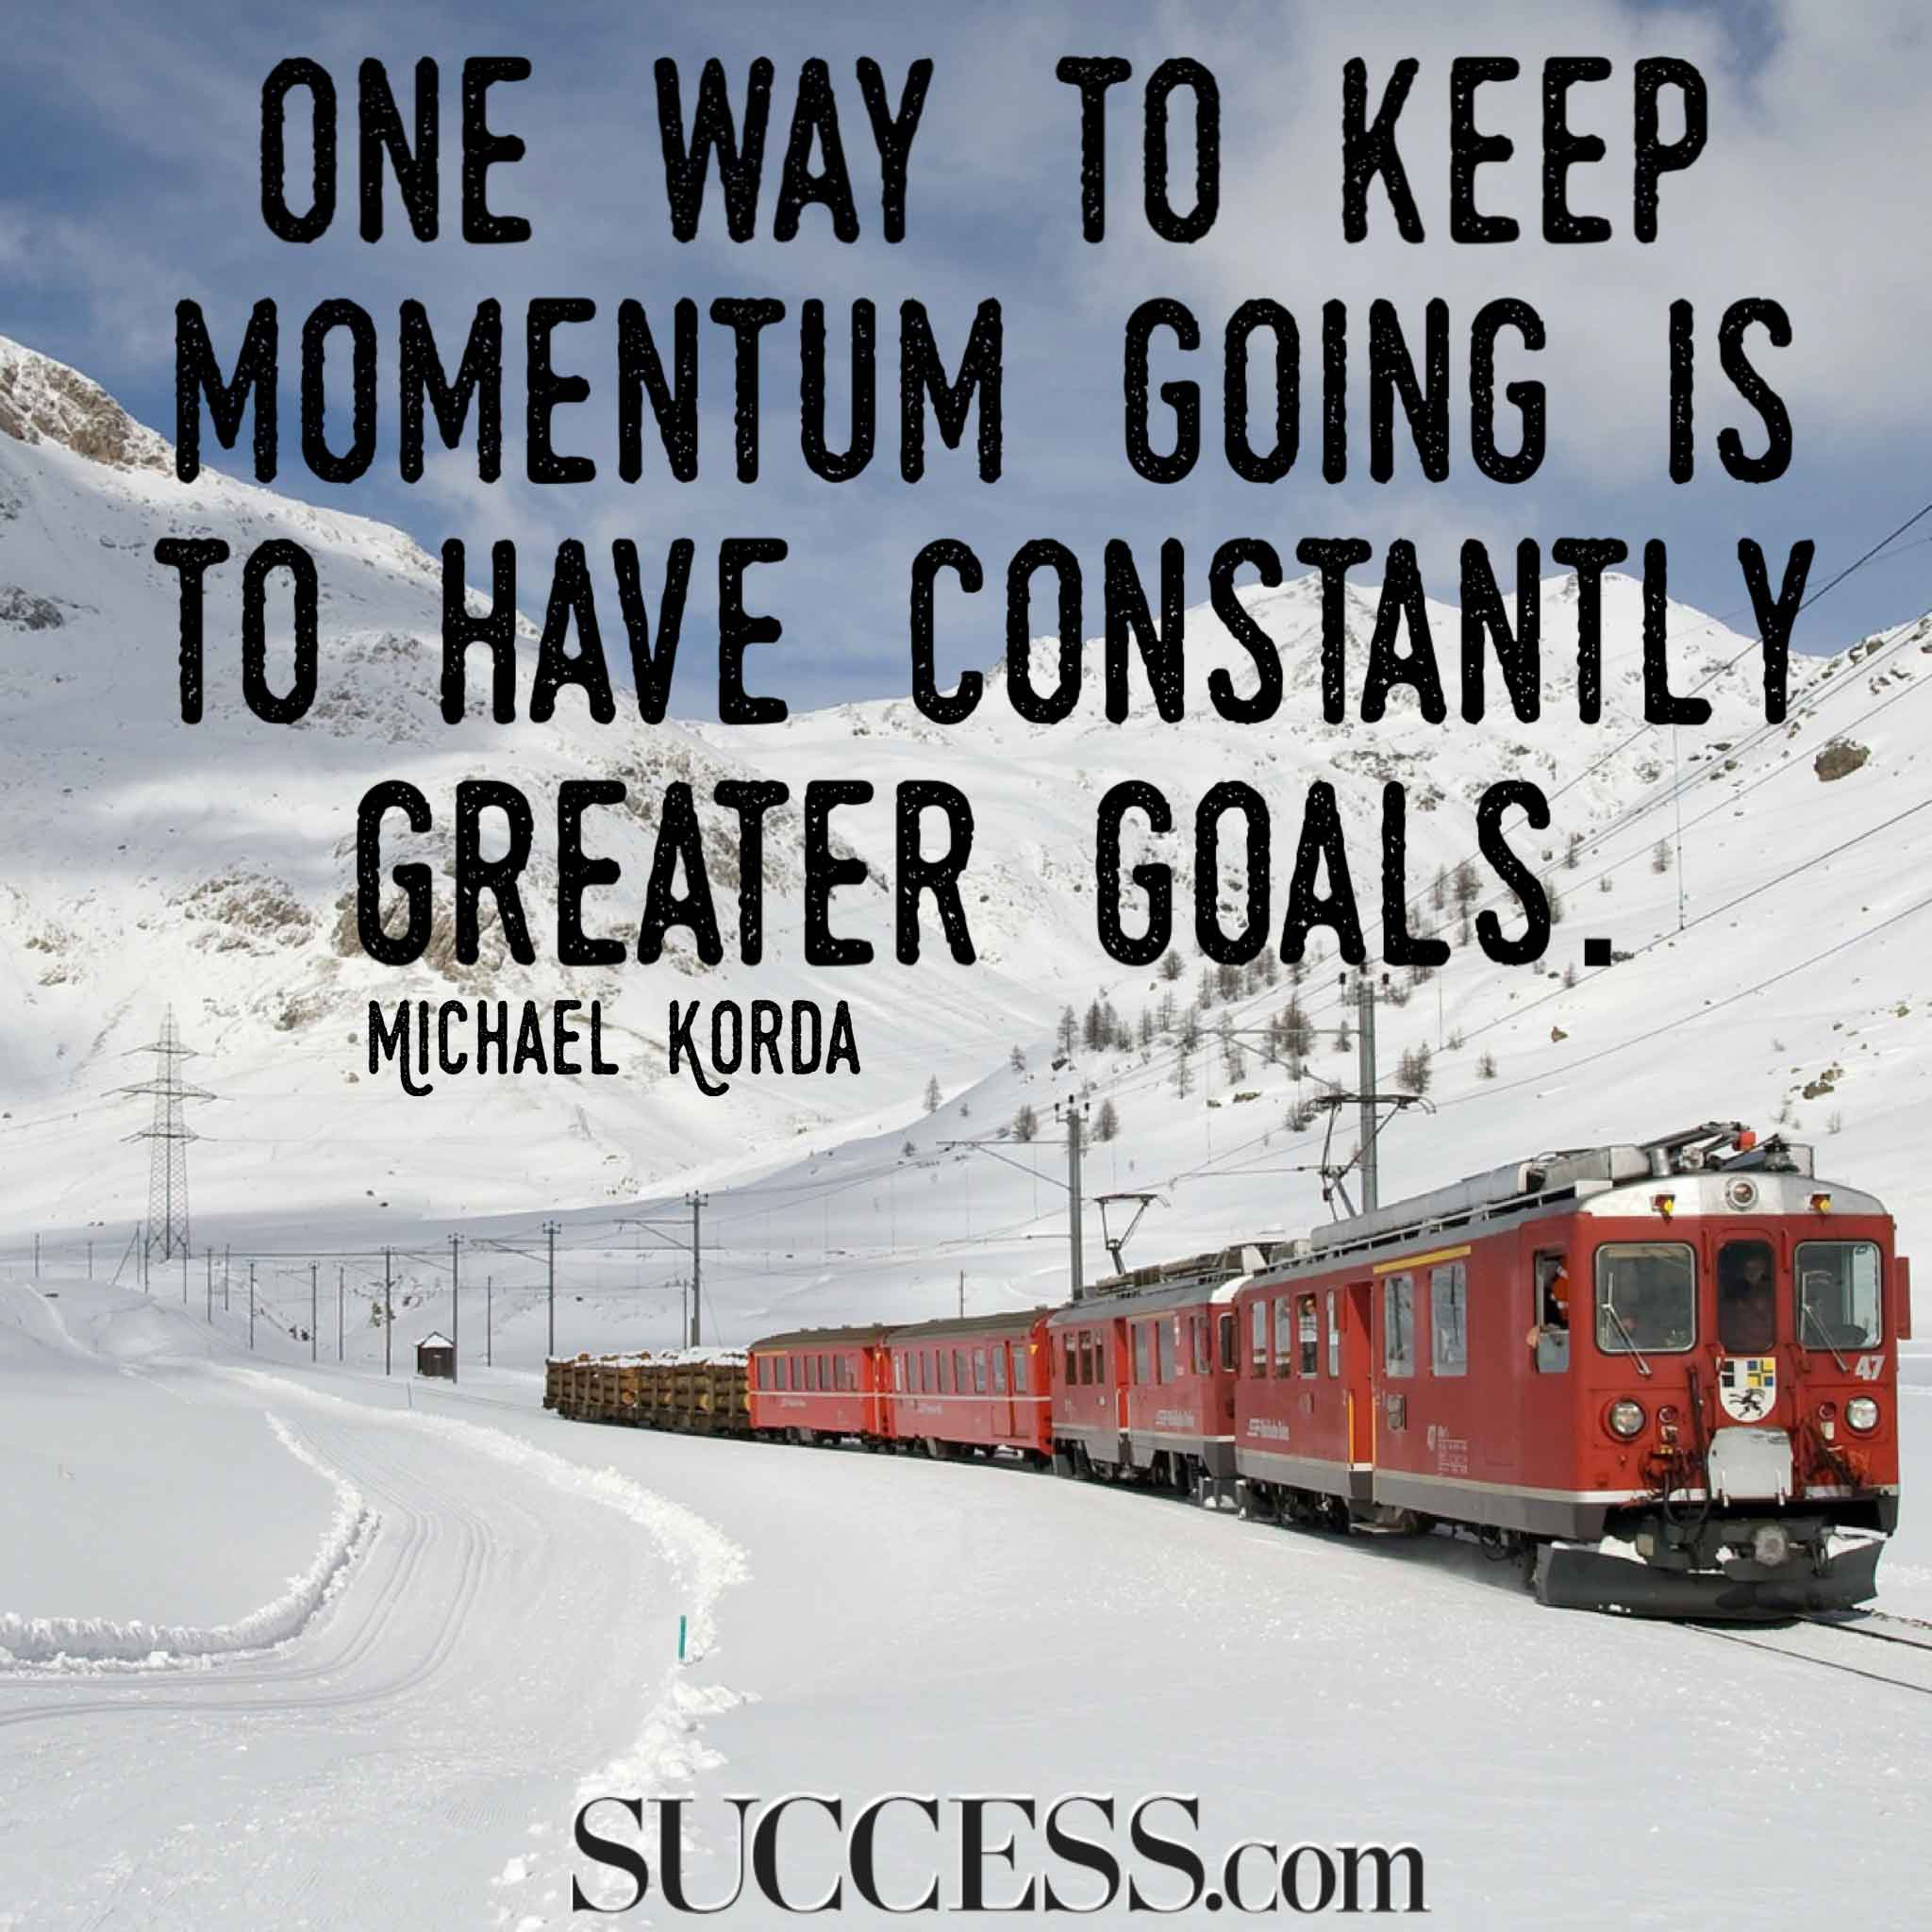 Motivational Quotes To Help You Achieve Your Dreams - Quotes about achieving goals and dreams